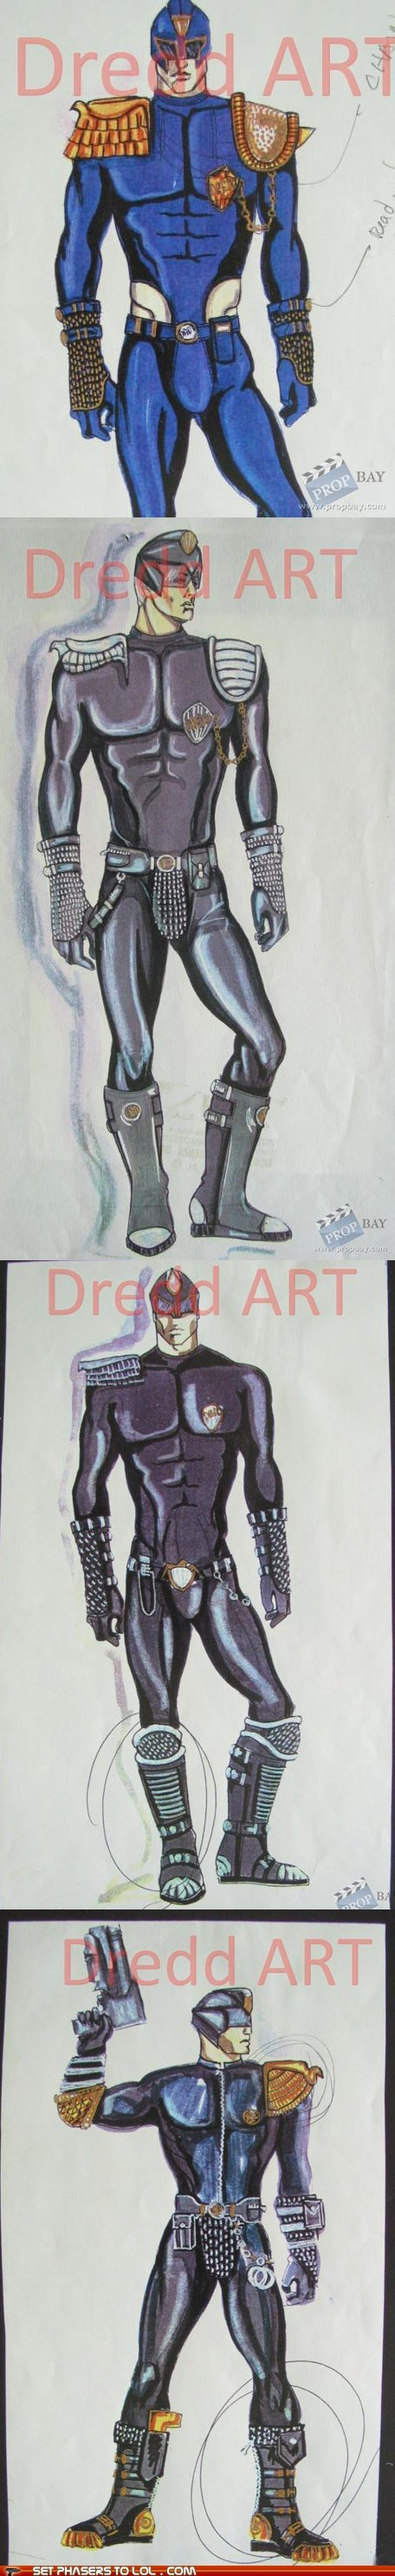 1995 concept art costume judge dredd Movie Sylvester Stalone